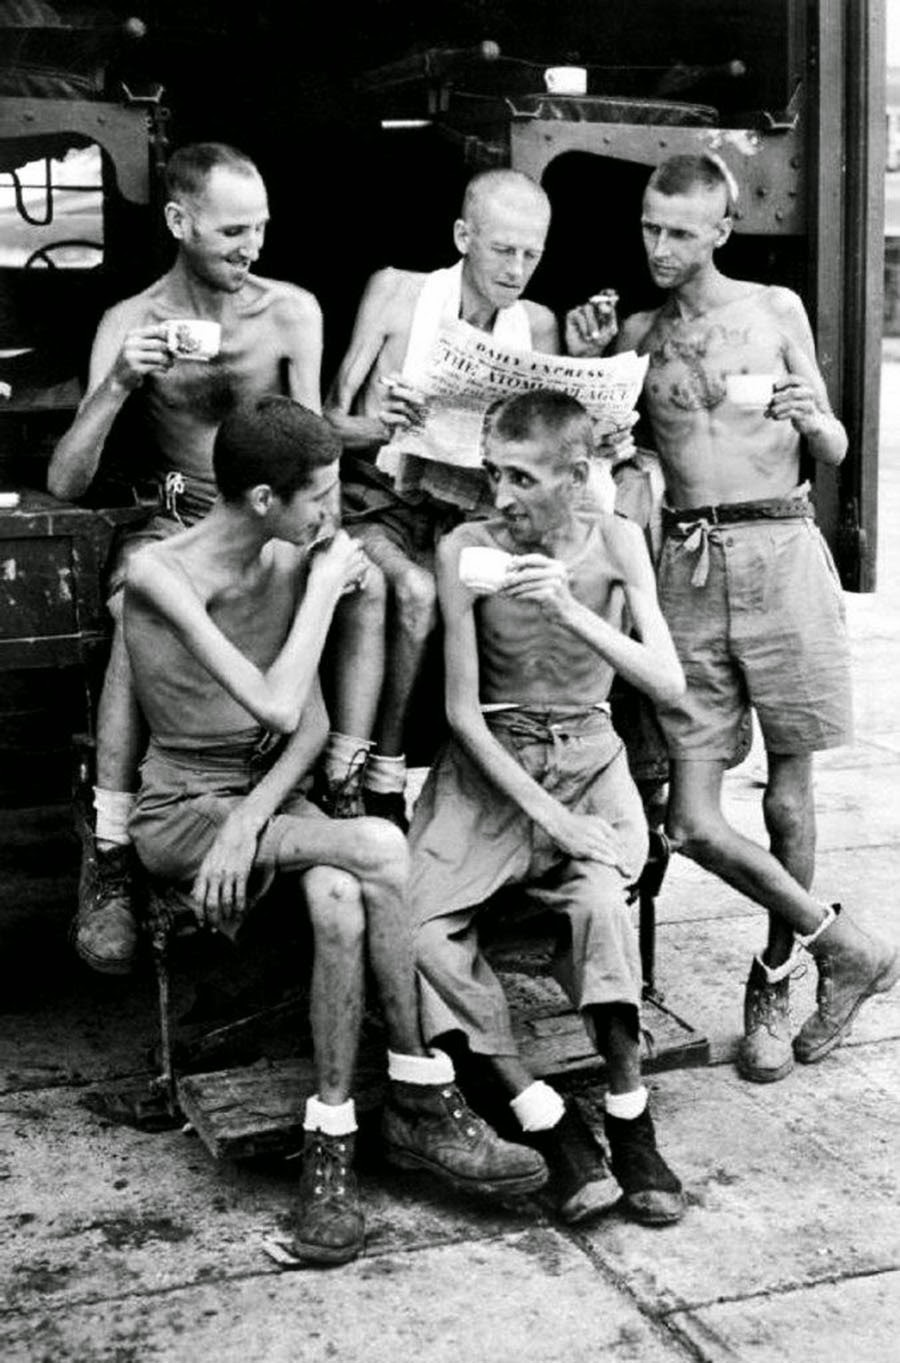 Five Australian former prisoners of war catch up on news from home after their release from Japanese captivity in Singapore, September 1945.